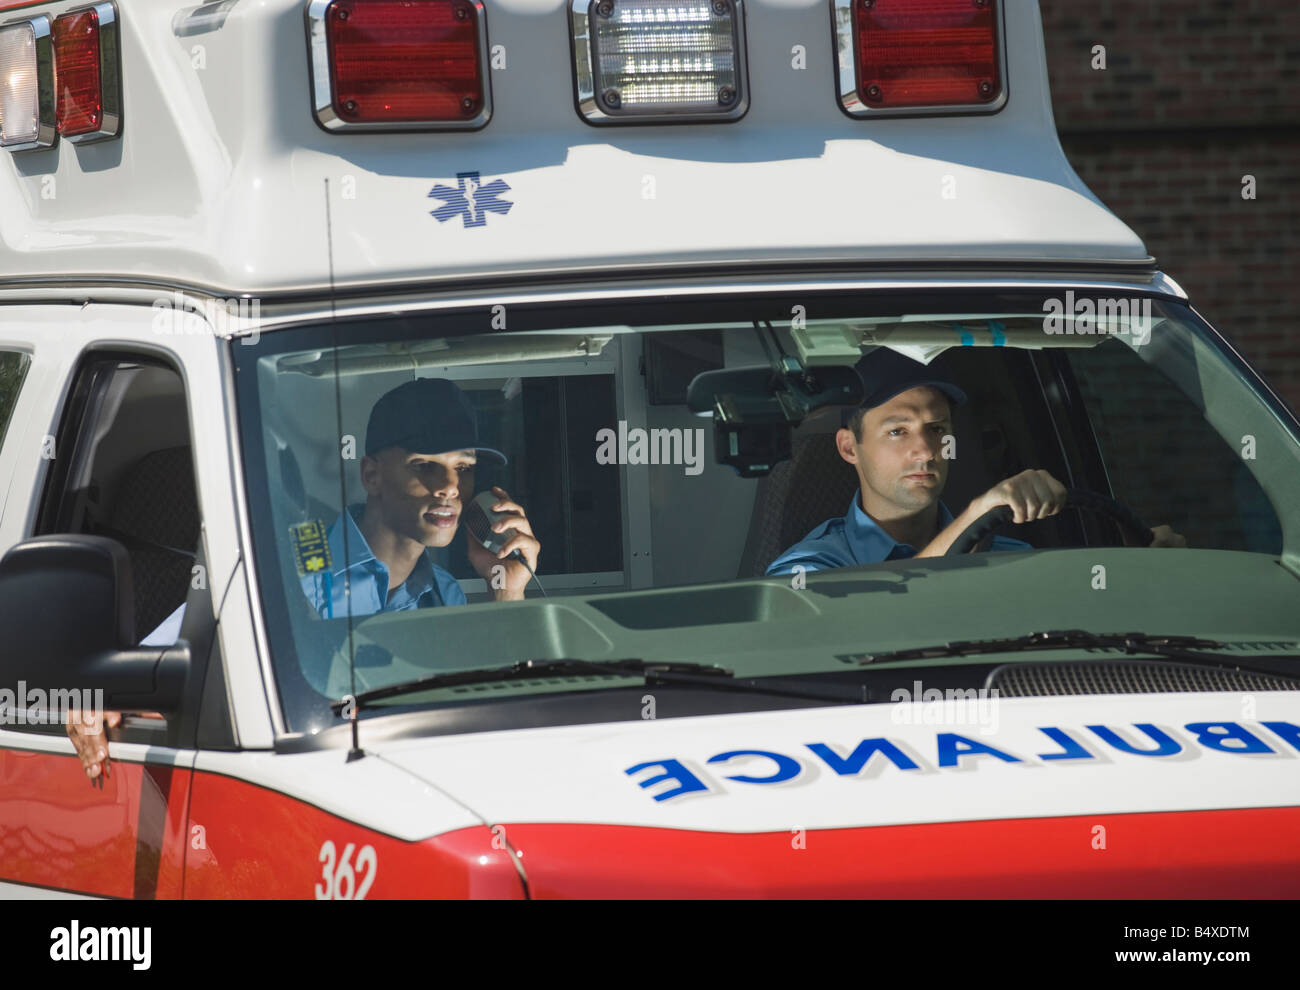 EMT's driving in ambulance - Stock Image